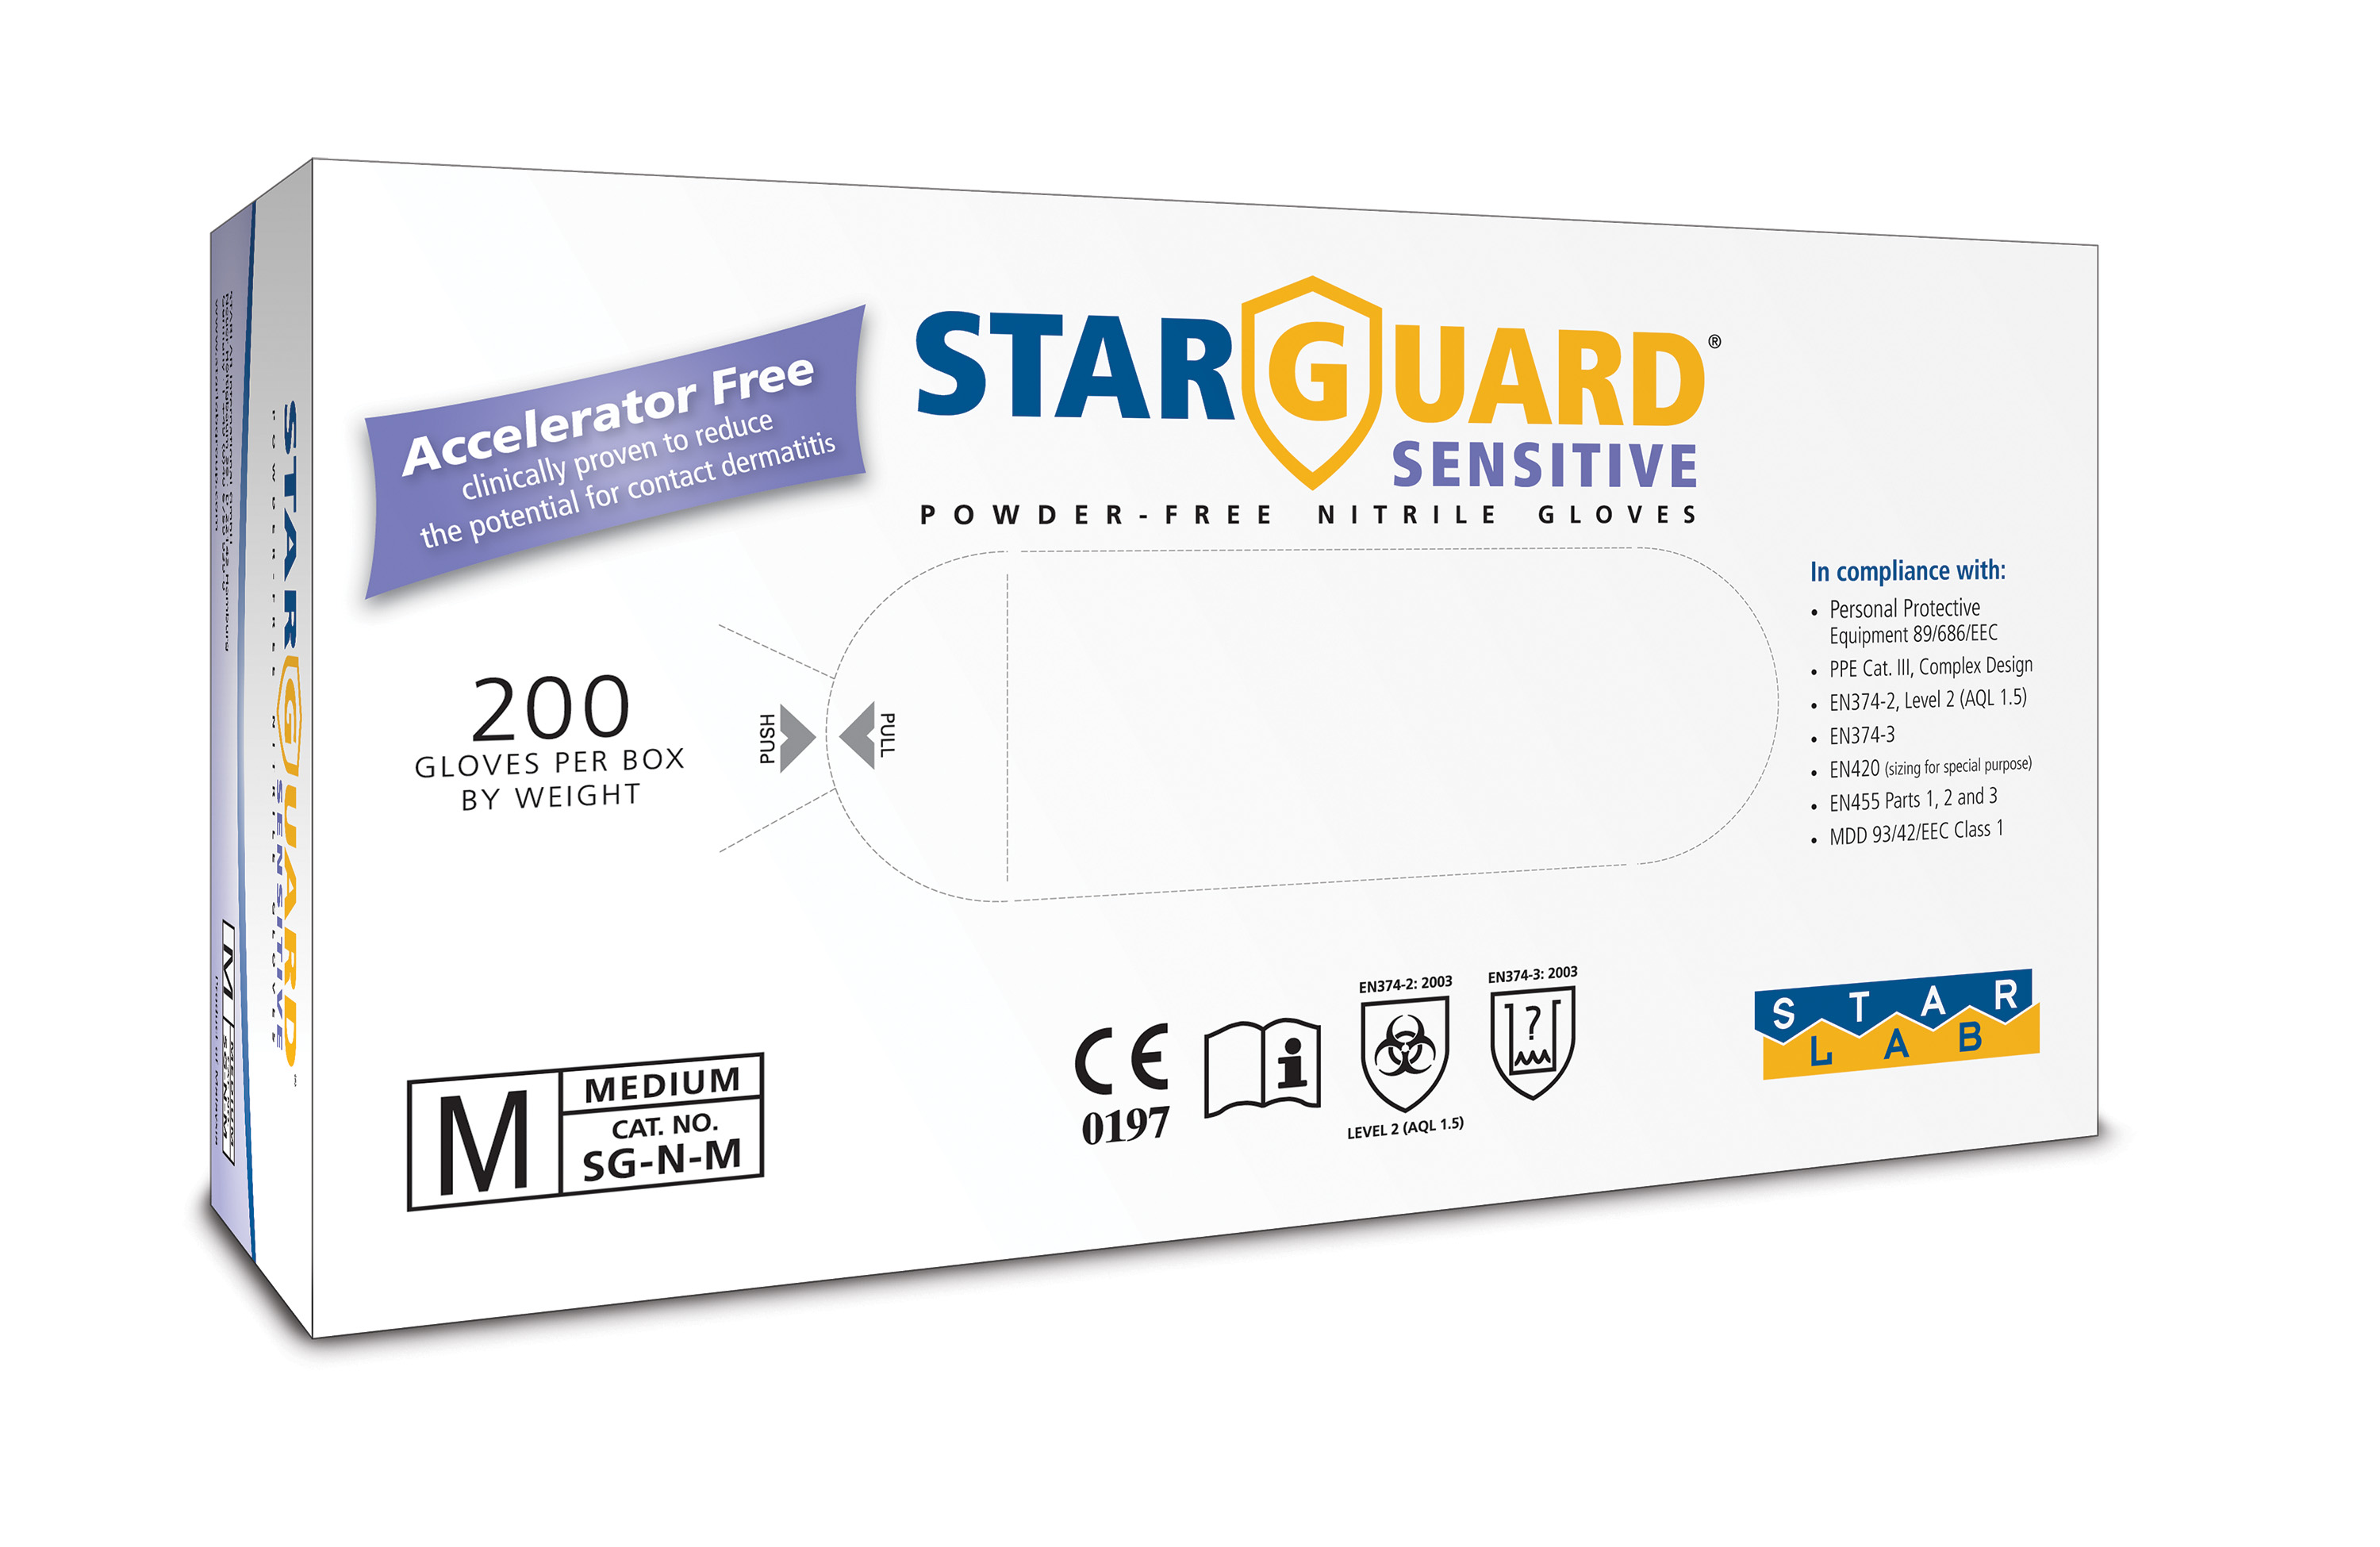 StarGuard SENSITIVE Nitrile Gloves, Powder Free, Blue, Size XS, Pk/ 10 x 200 gloves - just sFr. 7,85/100 gloves